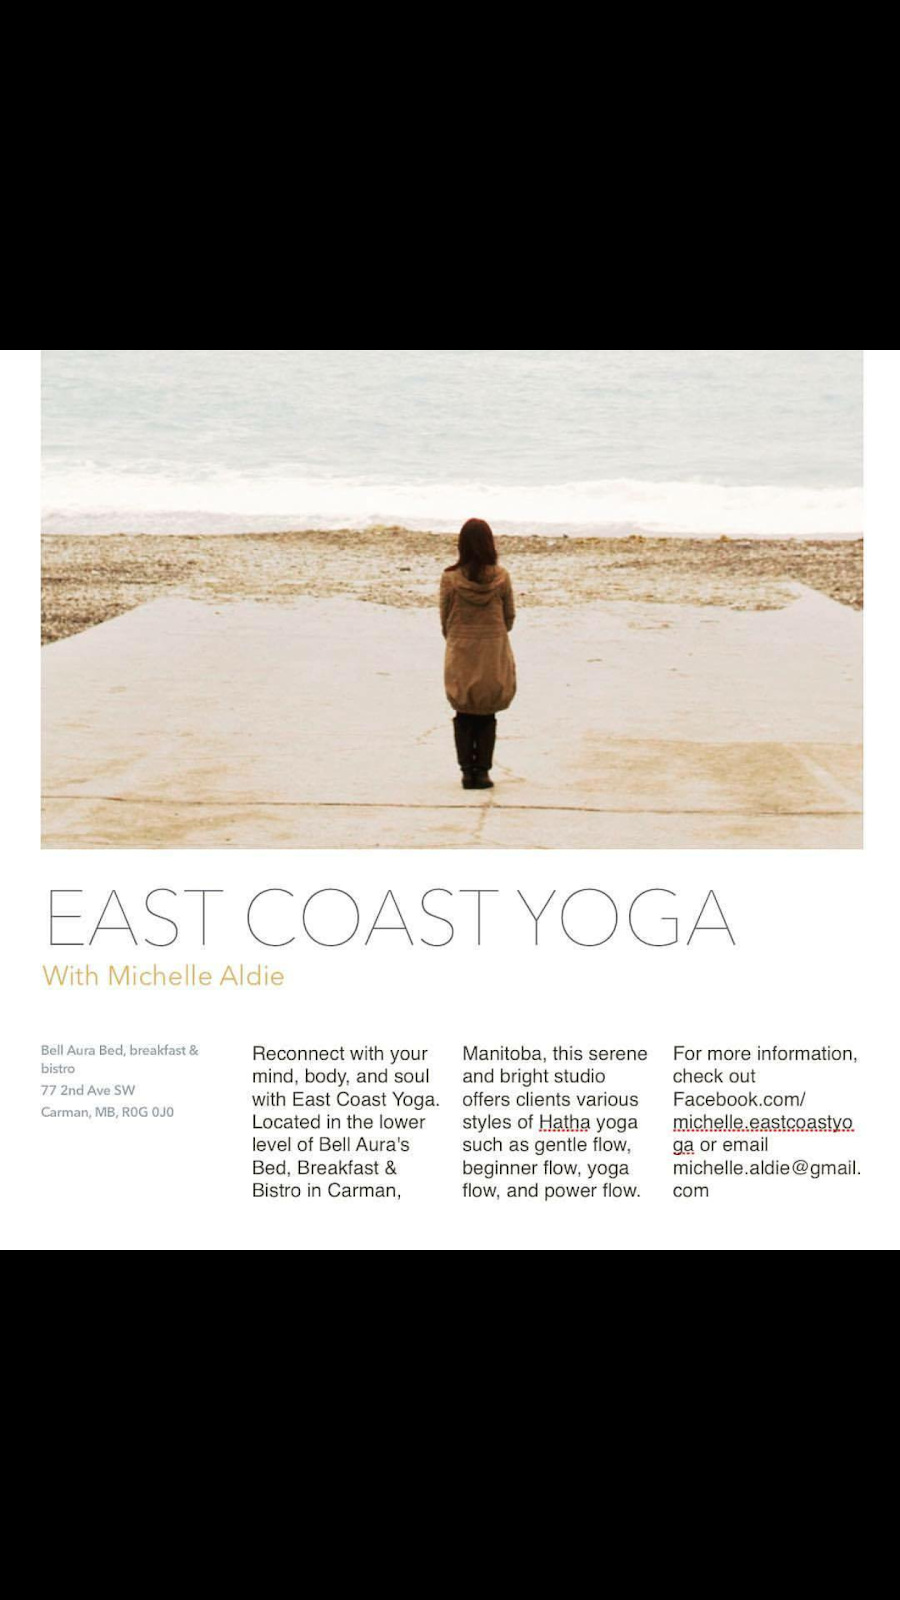 East Coast Yoga Carman Manitoba | gym | Box 145, 200 2nd St NE, Carman, MB R0G 0J0, Canada | 2049394353 OR +1 204-939-4353